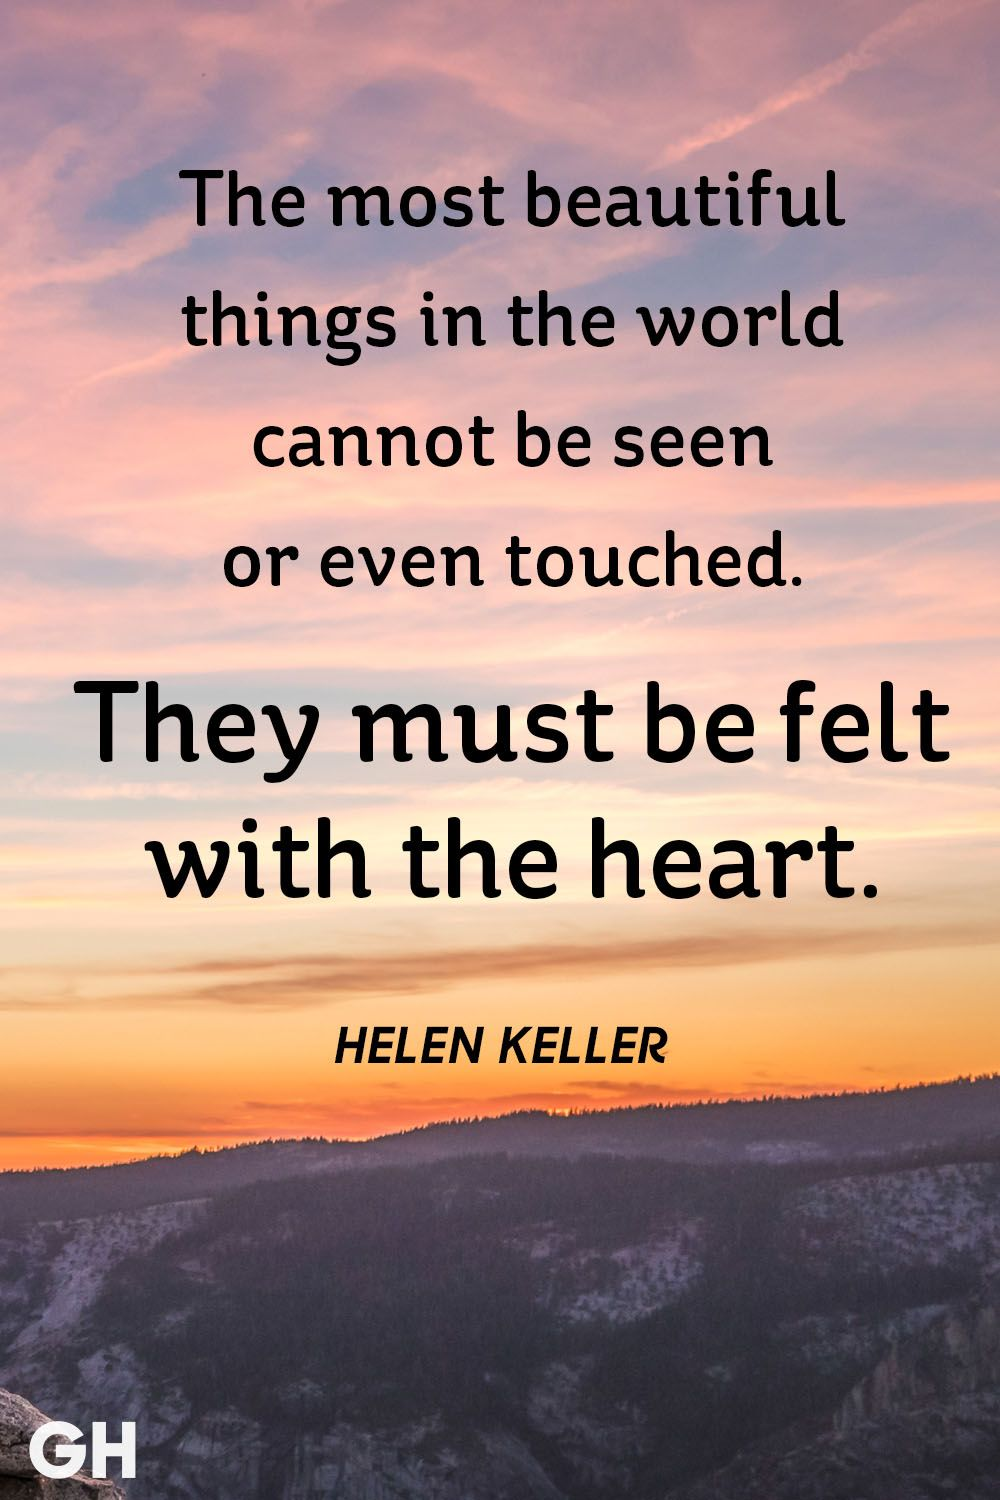 Image of: Quotes Brainyquote Helen Keller Beautiful Life Quote Good Housekeeping 30 Inspirational Quotes About Life Beautiful Famous Life Quotes